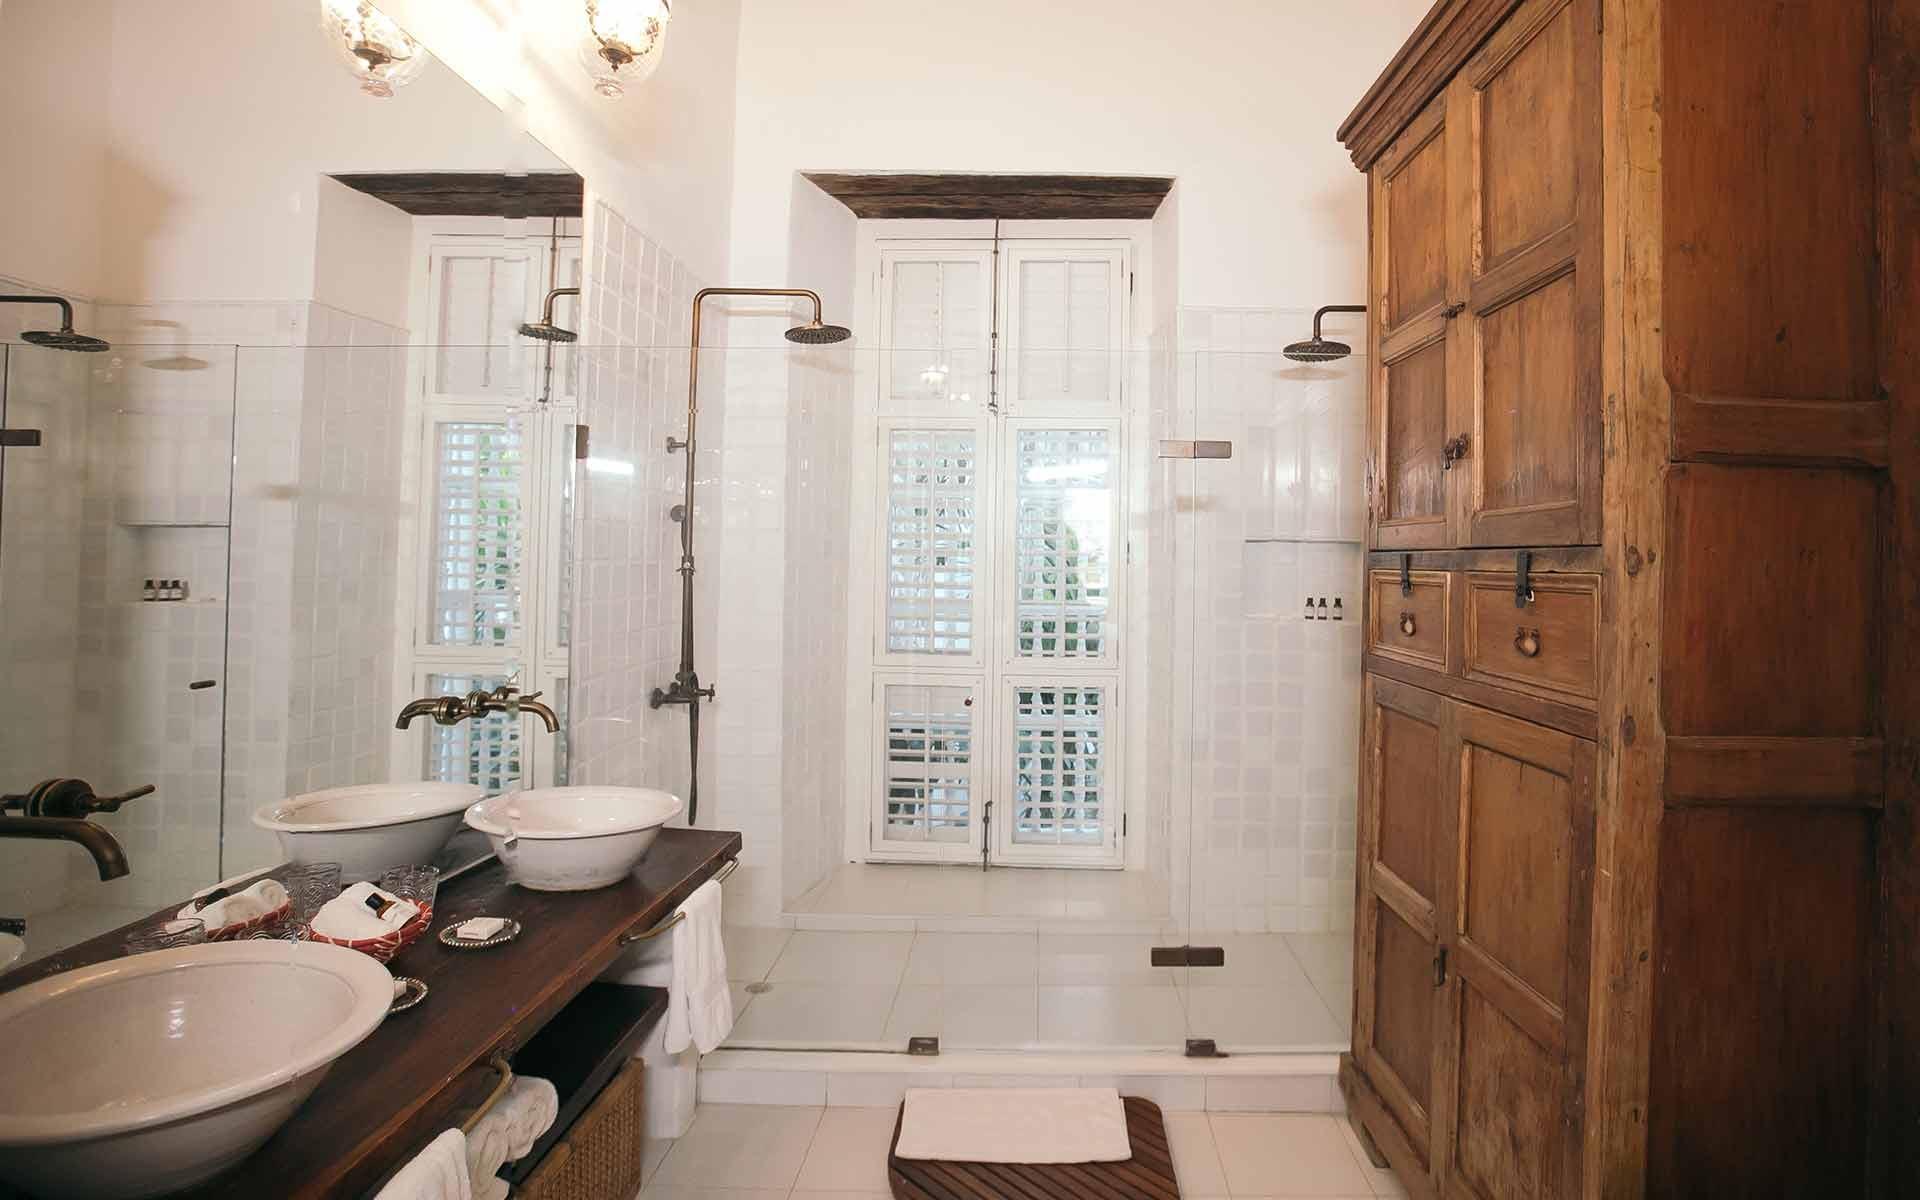 Heron bathroom at Amarla Boutique Hotel featuring twin basins and walk in shower